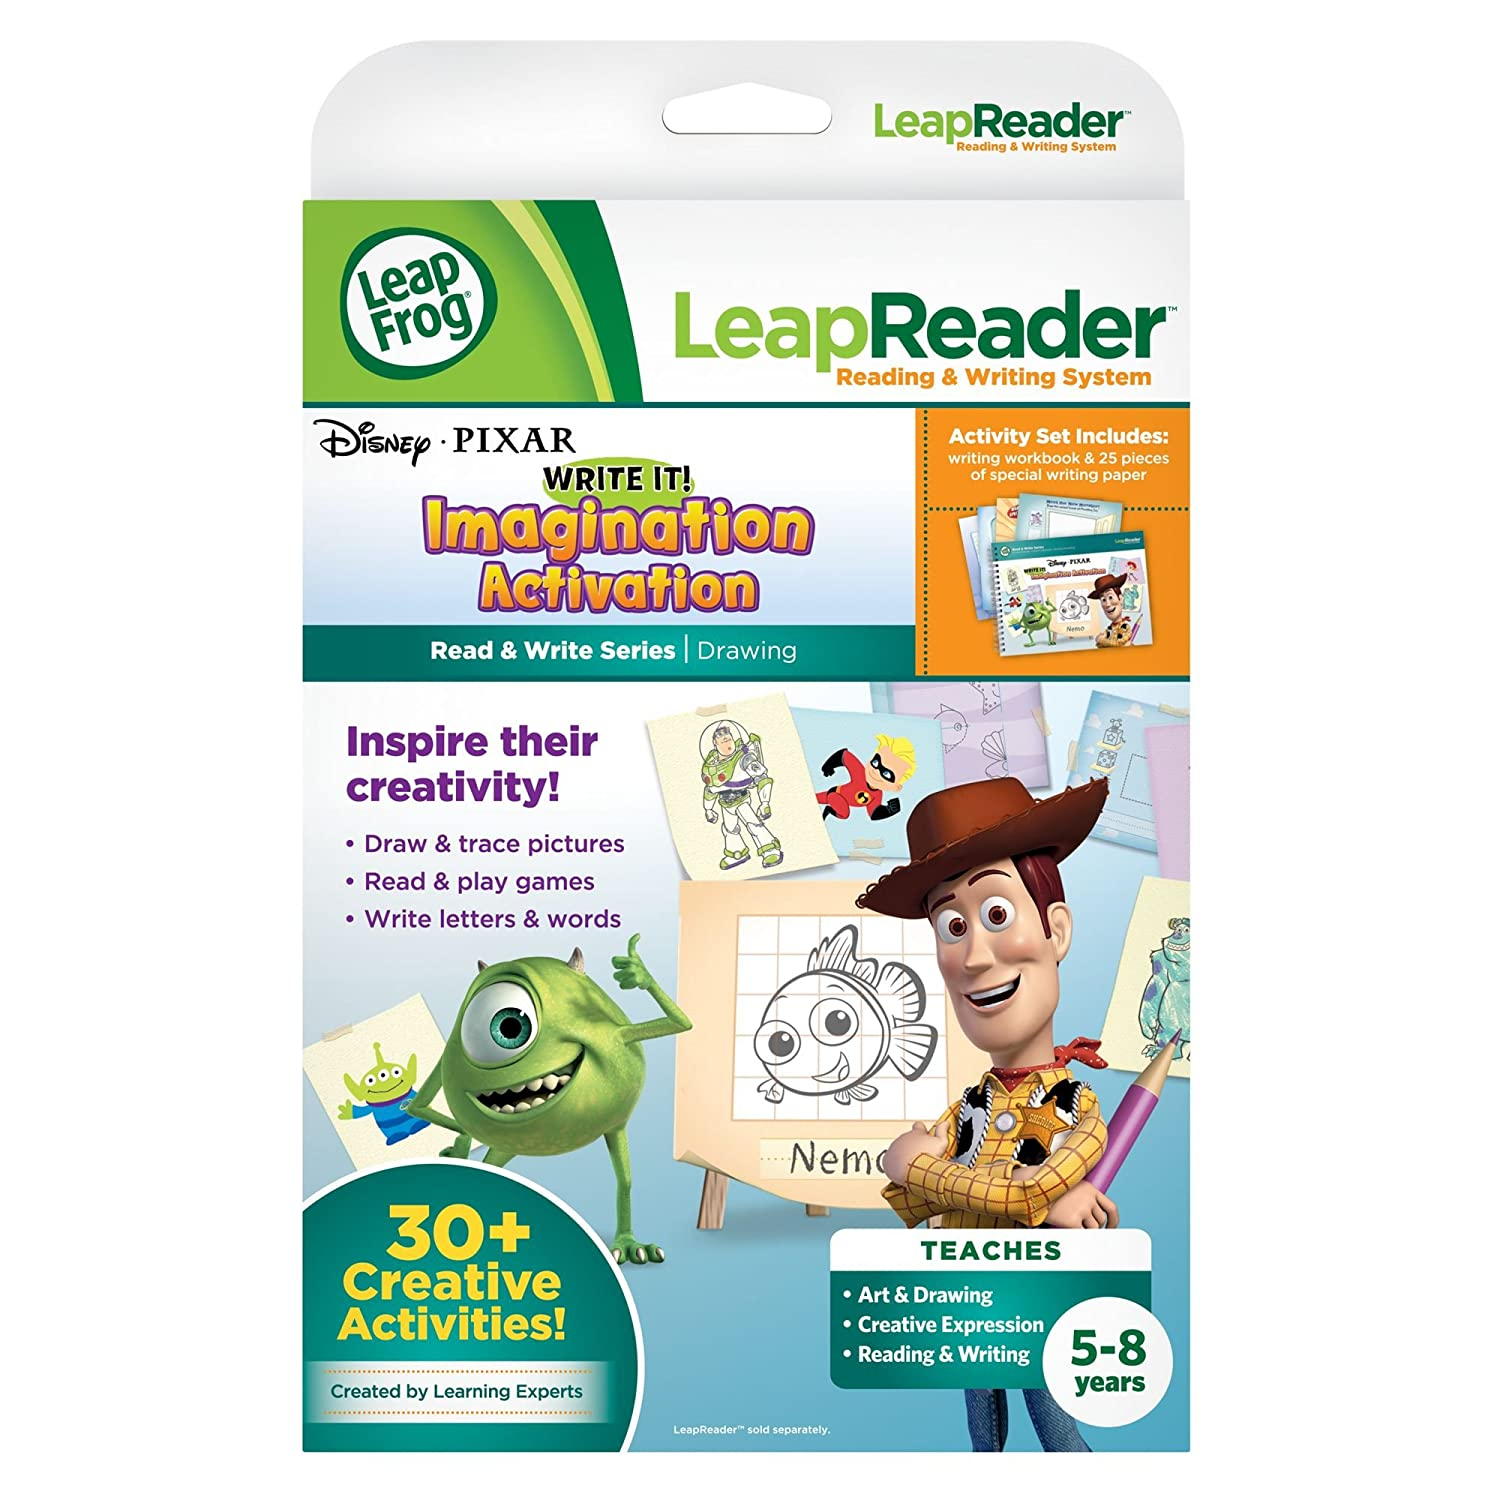 Receive LeapFrog coupon codes and other top promos in your inbox, free! Receive our latest LeapFrog discounts no more than once a week and no spam. SIGN ME UP! FREE SHIPPING lossroad.tk Coupon. lossroad.tk Online Coupons. Magic Madhouse Coupon Code. lossroad.tk Promo Codes.